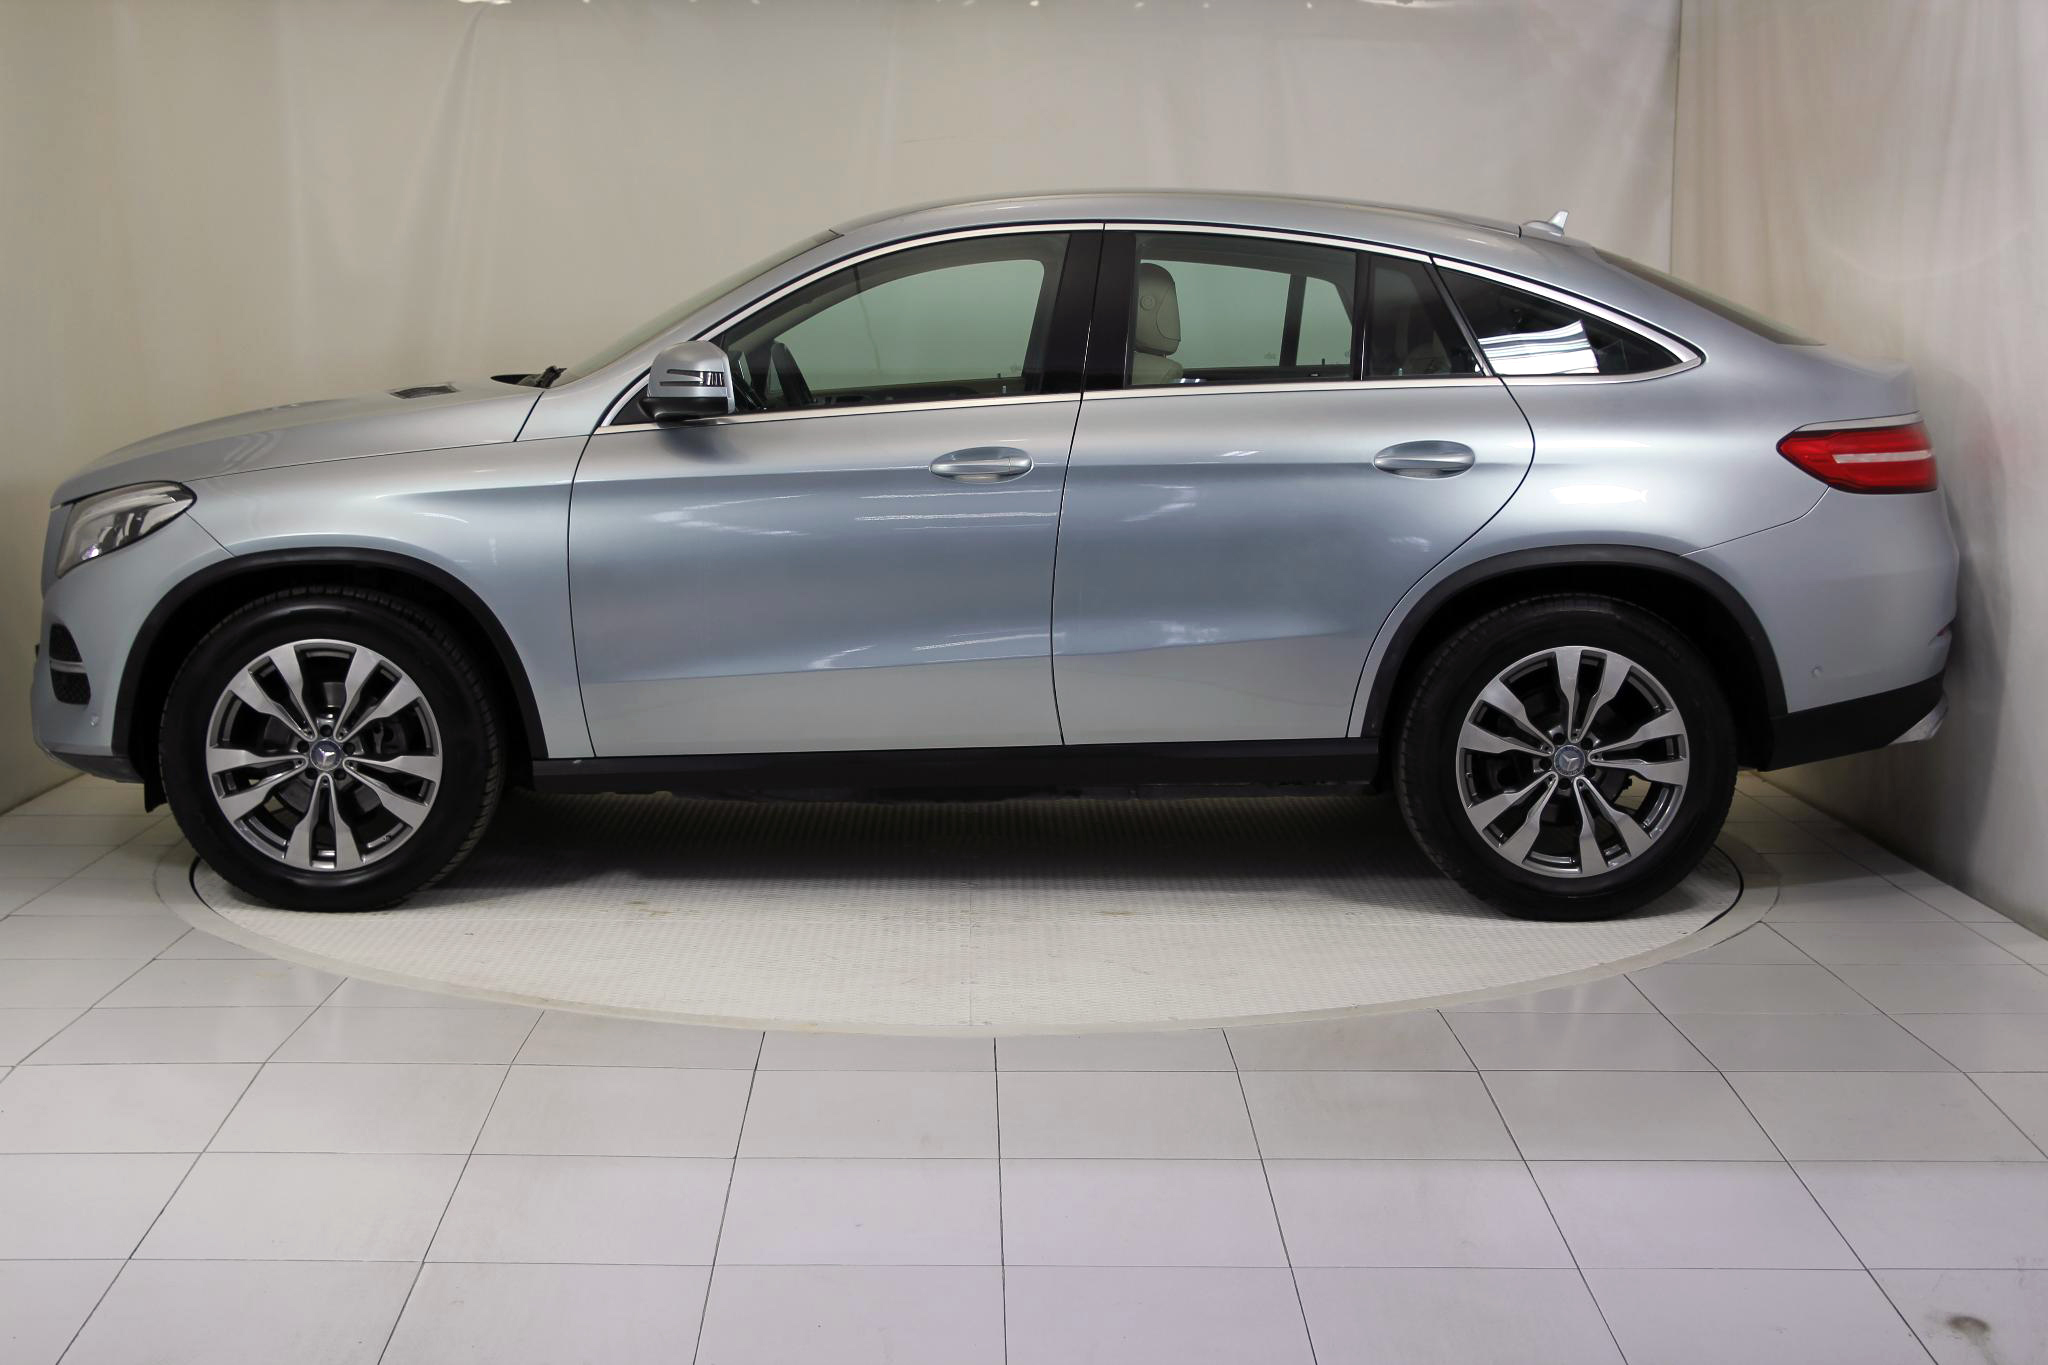 Mercedes-Benz Clase GLE GLE COUPE 350 D 4MATIC imagen 9